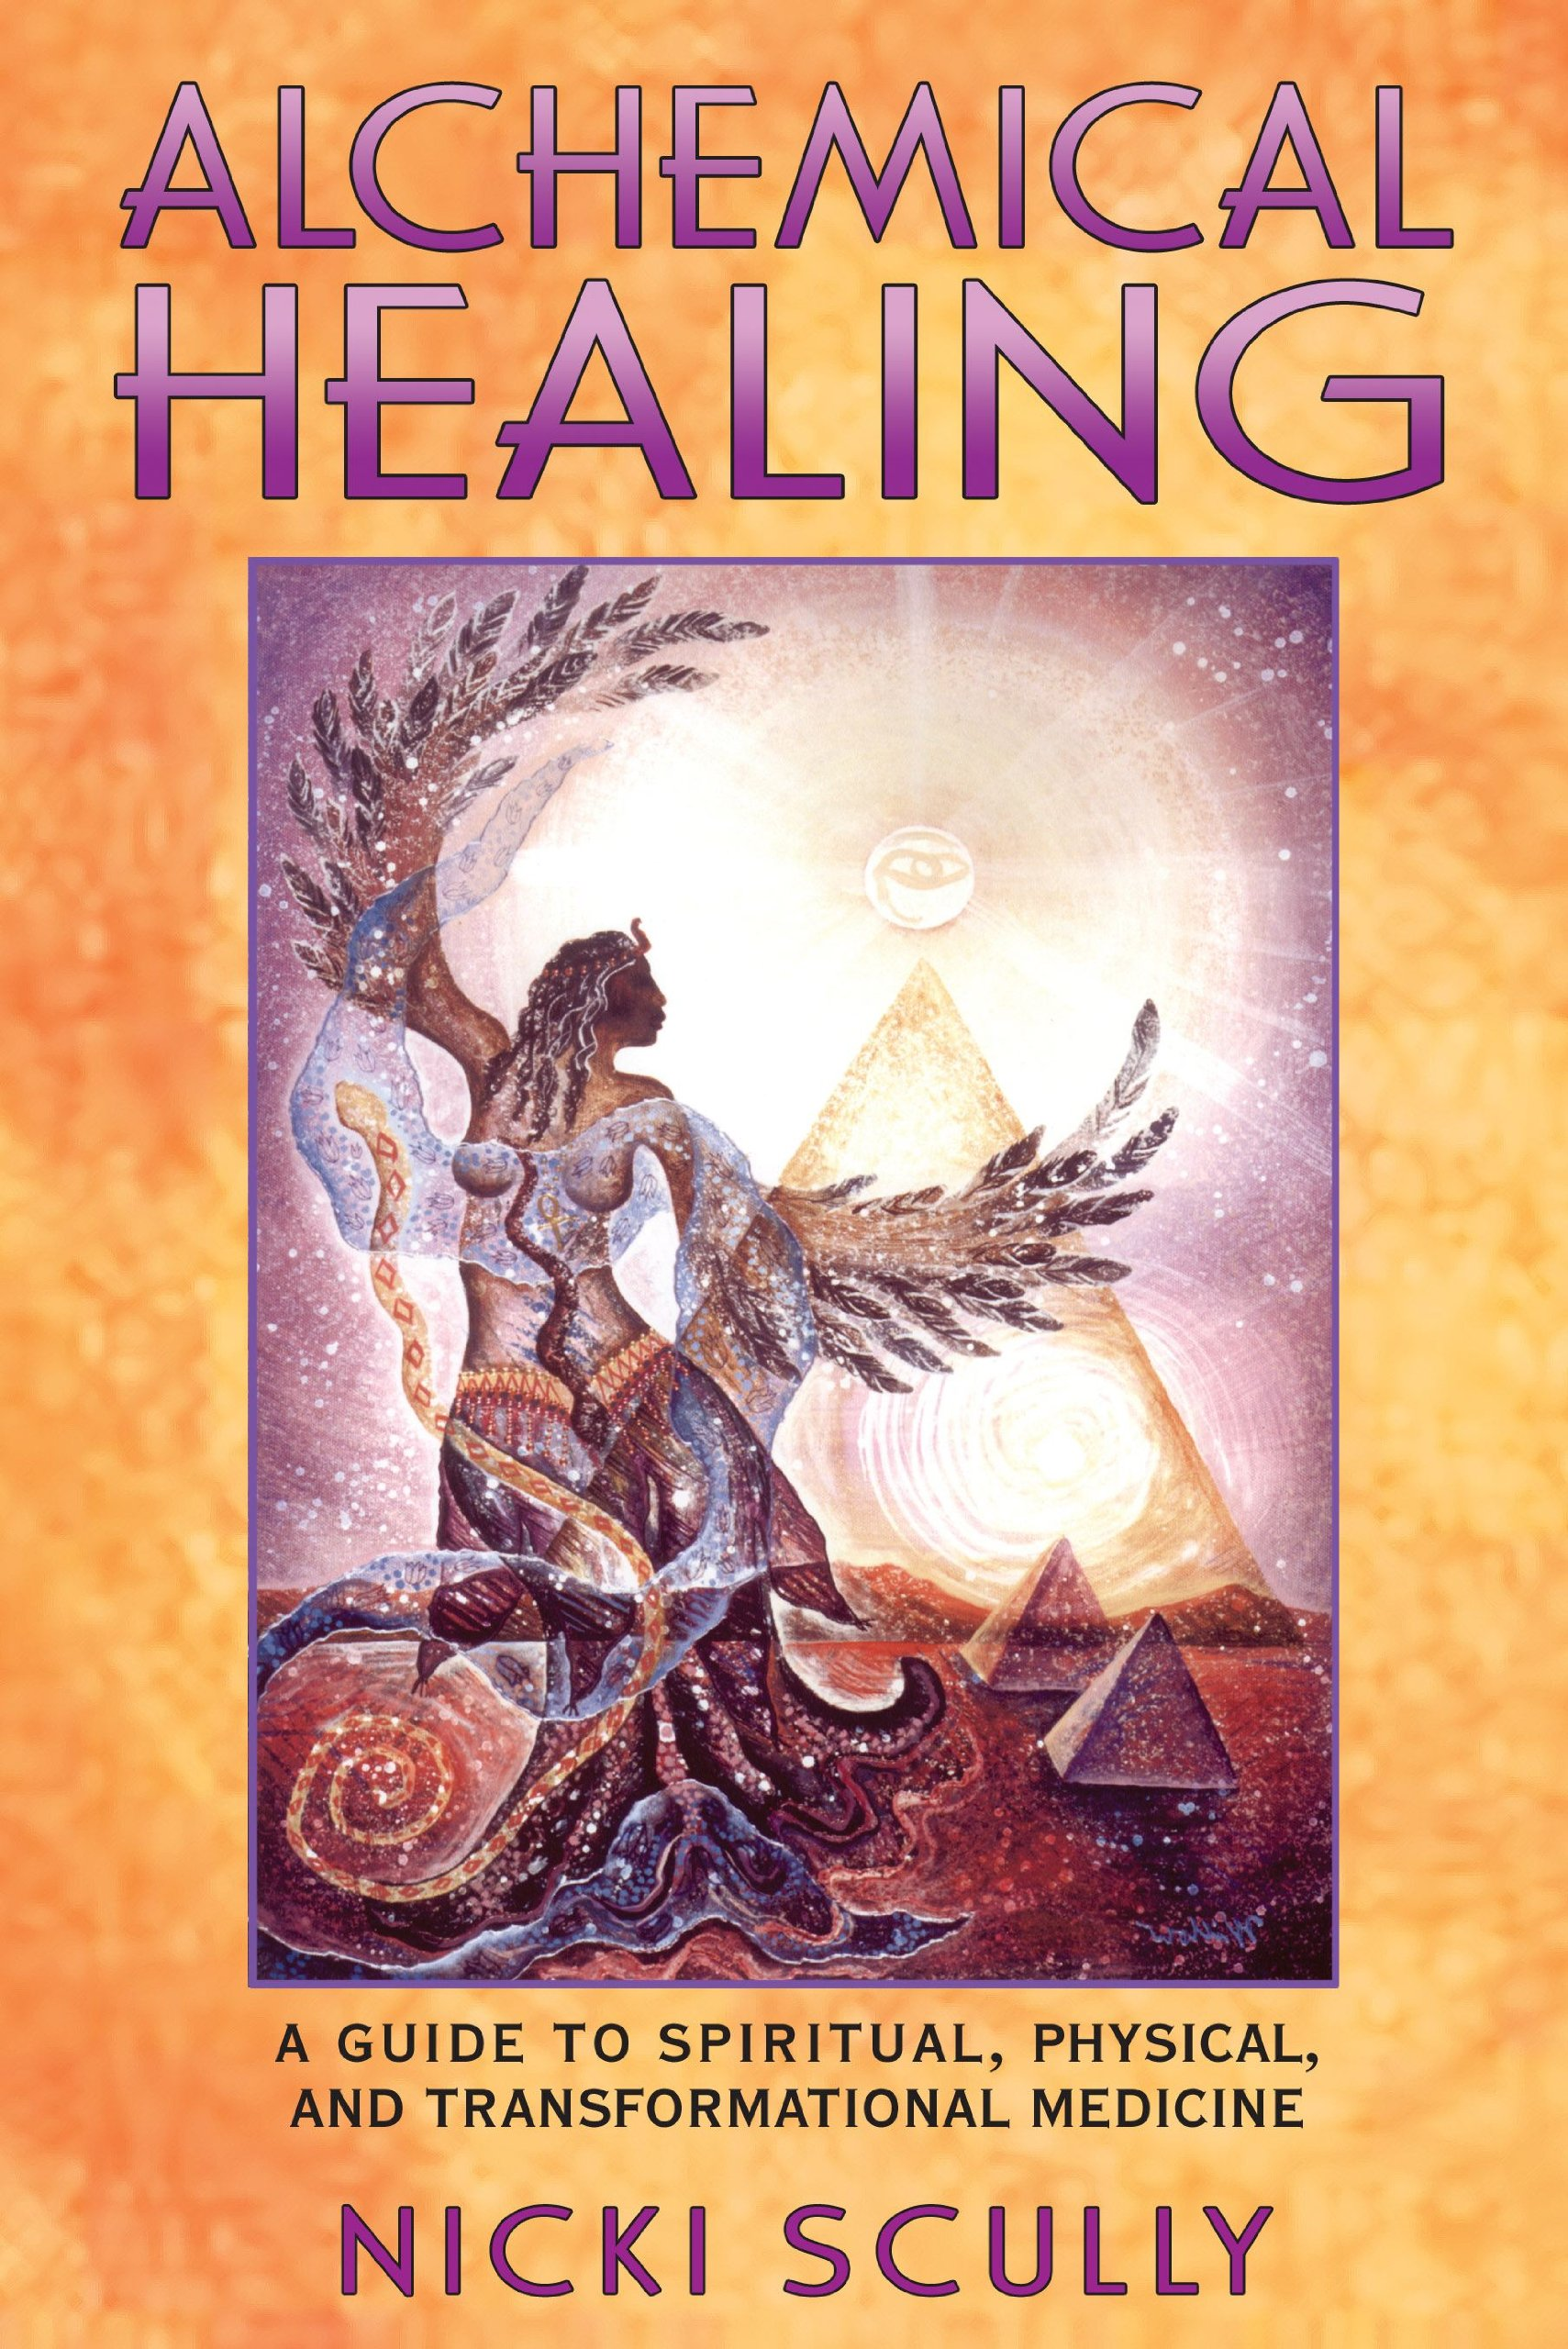 Download Alchemical Healing: A Guide to Spiritual, Physical, and Transformational Medicine pdf